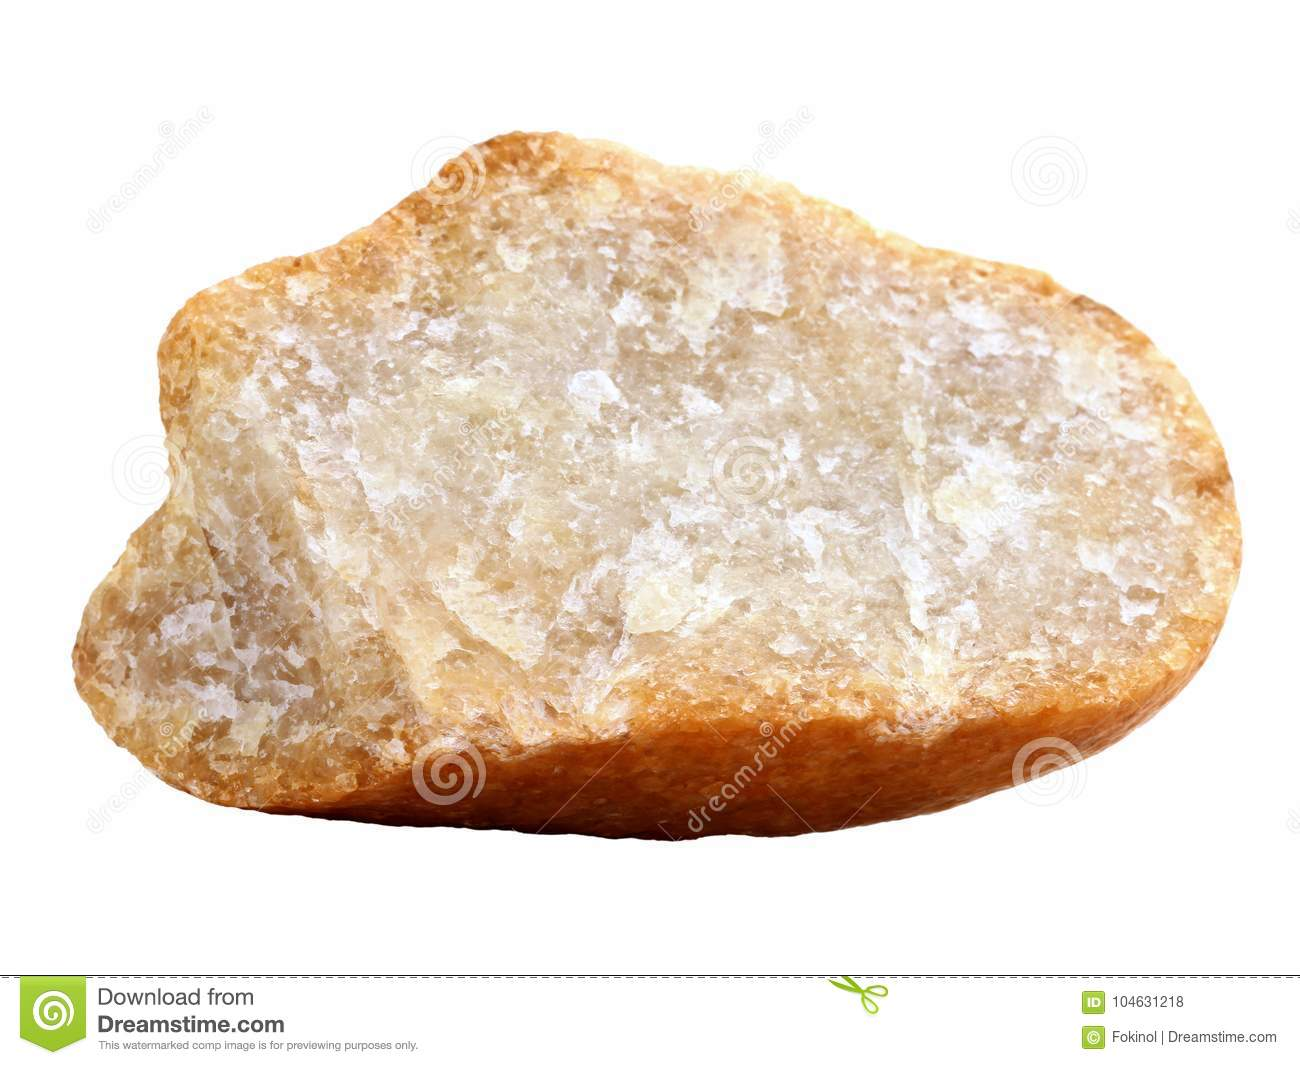 Natural sample of crystalline quartzite rock on white background